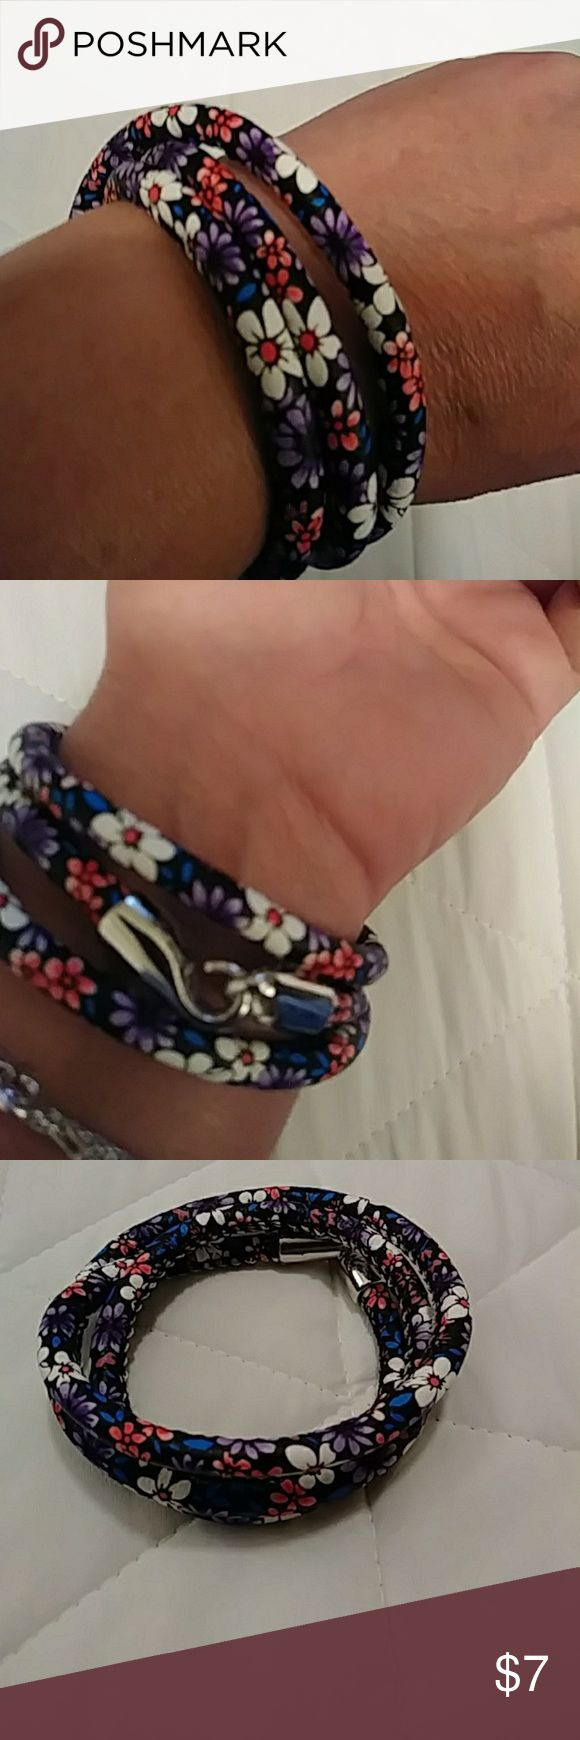 Floral Wrap Bracelet Fabric bracelet with pretty flowers...someone gave it to my granddaughter and it's too big for a 6 year old so she wants to sell it and make money too! I actually will be giving her the money and tell her it sold. Jewelry Bracelets